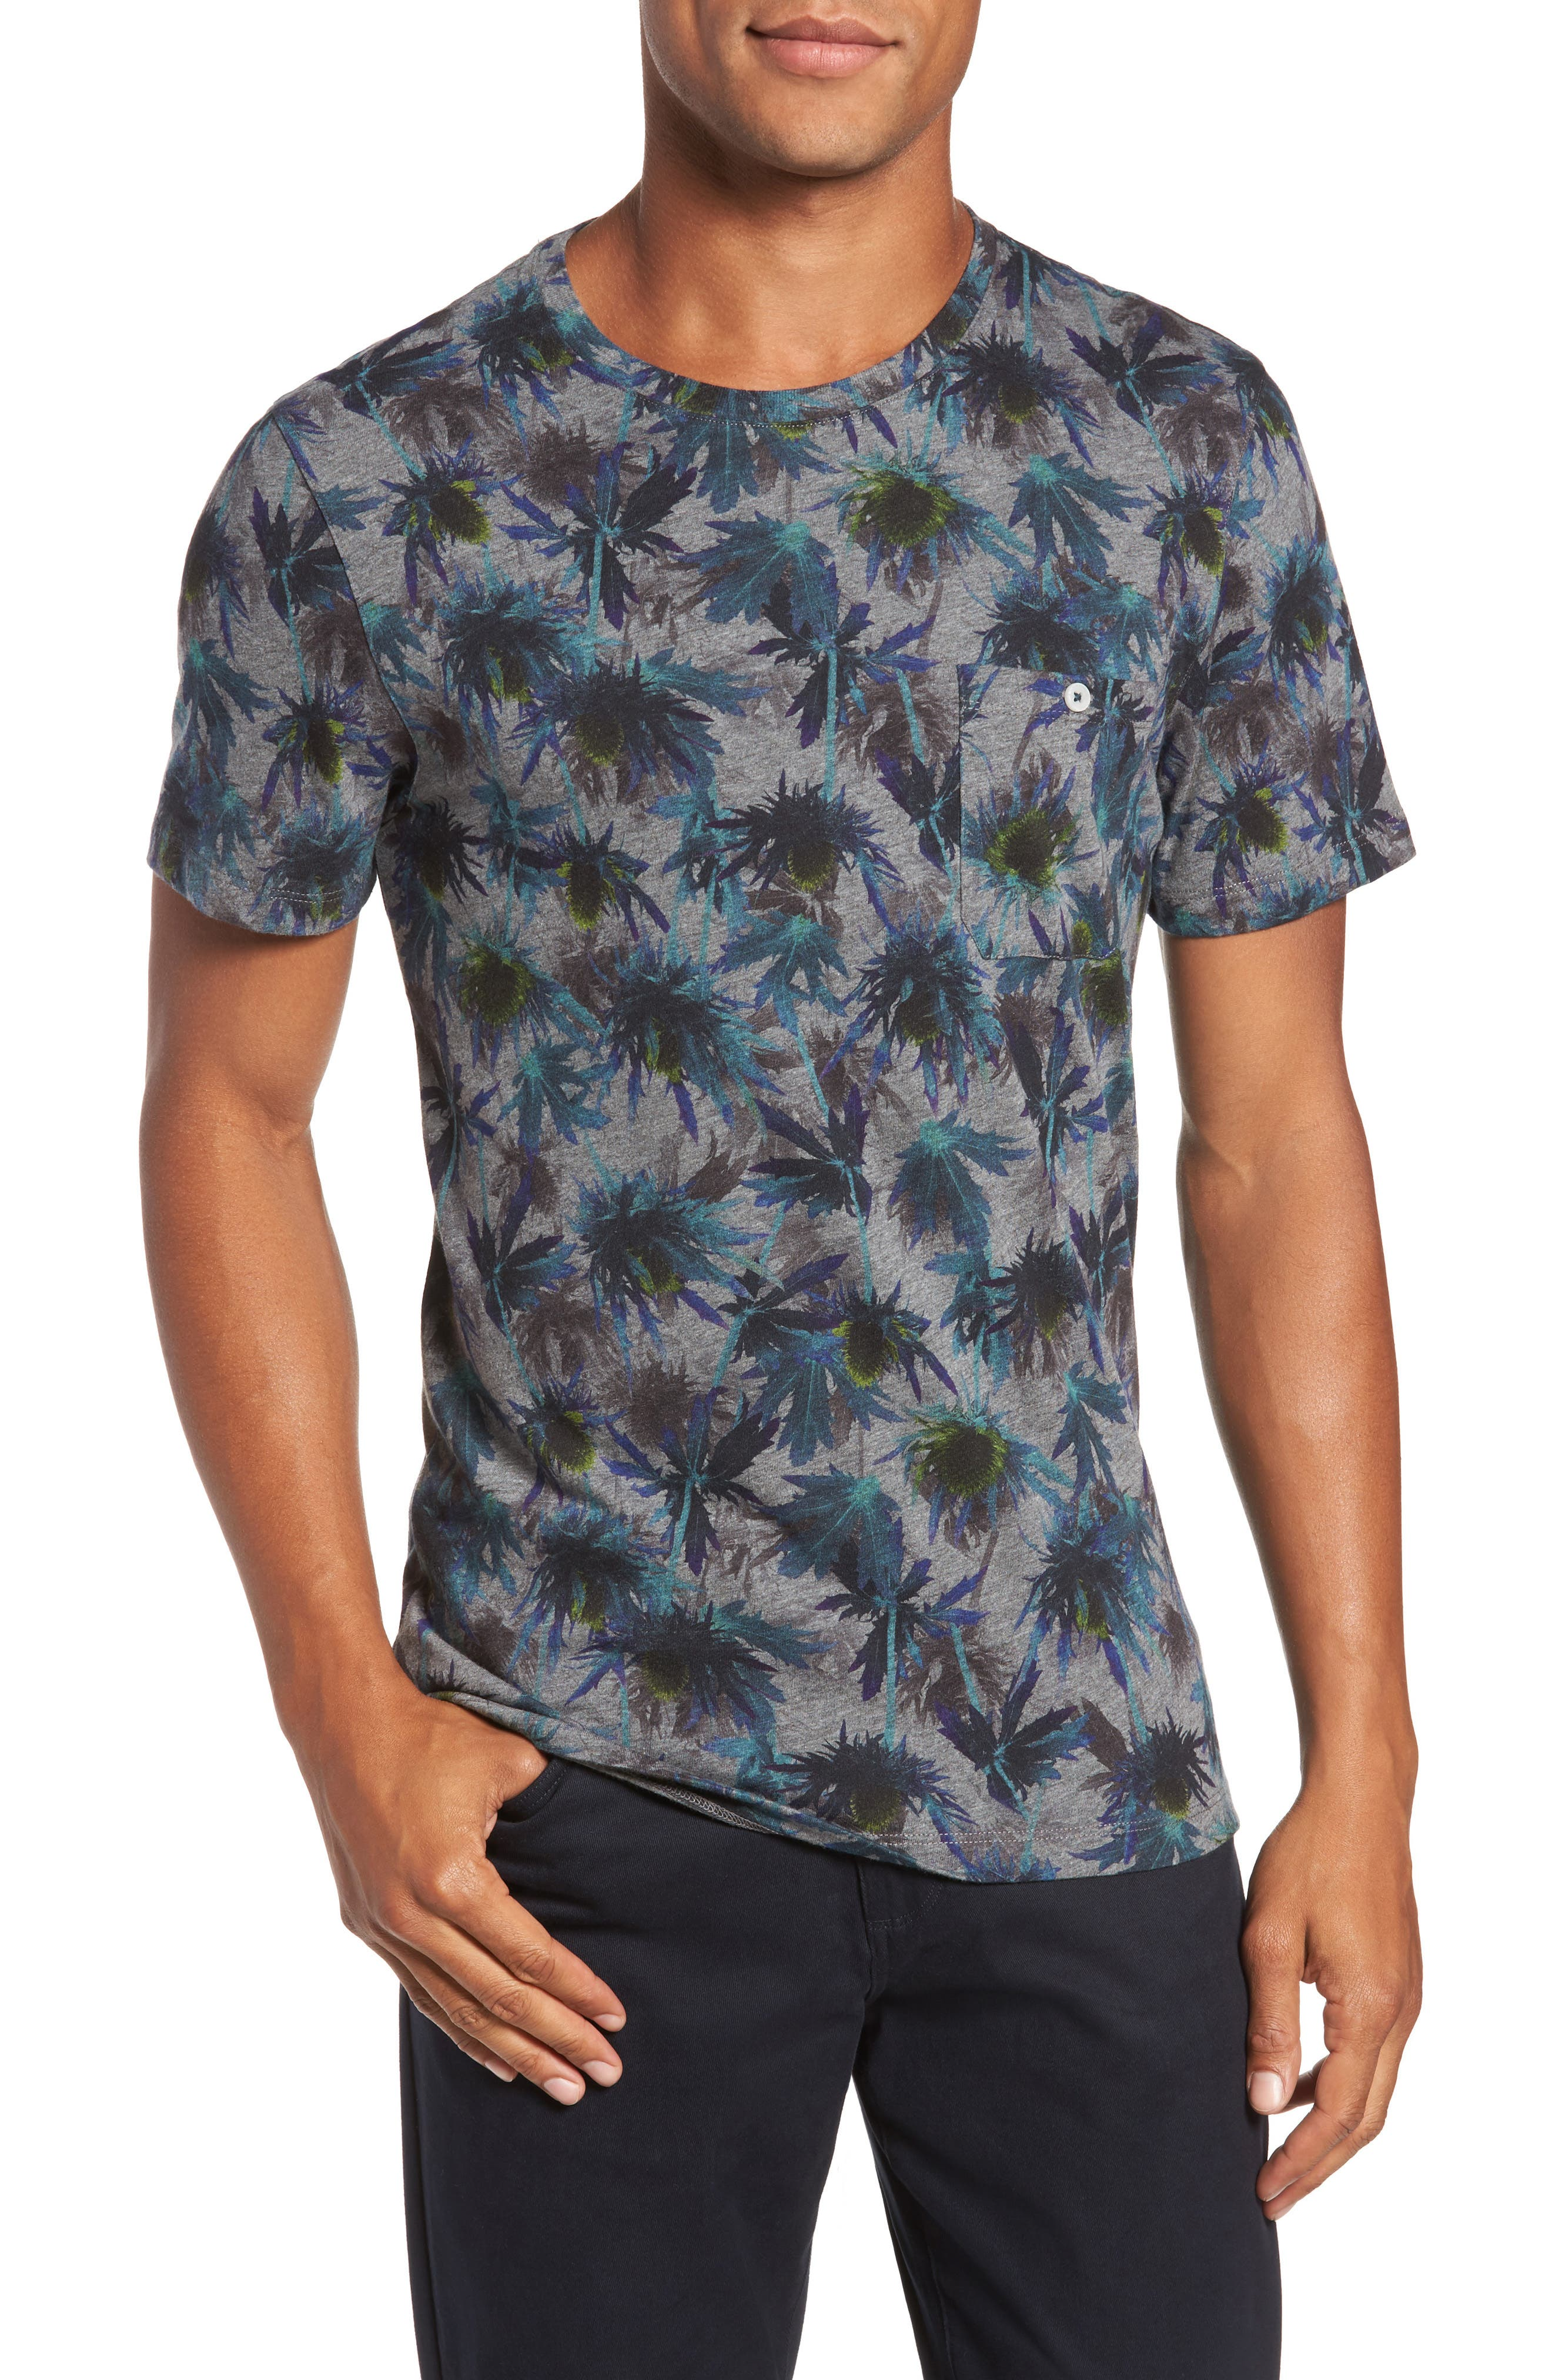 Katatak Thistle Print T-Shirt,                         Main,                         color, 030